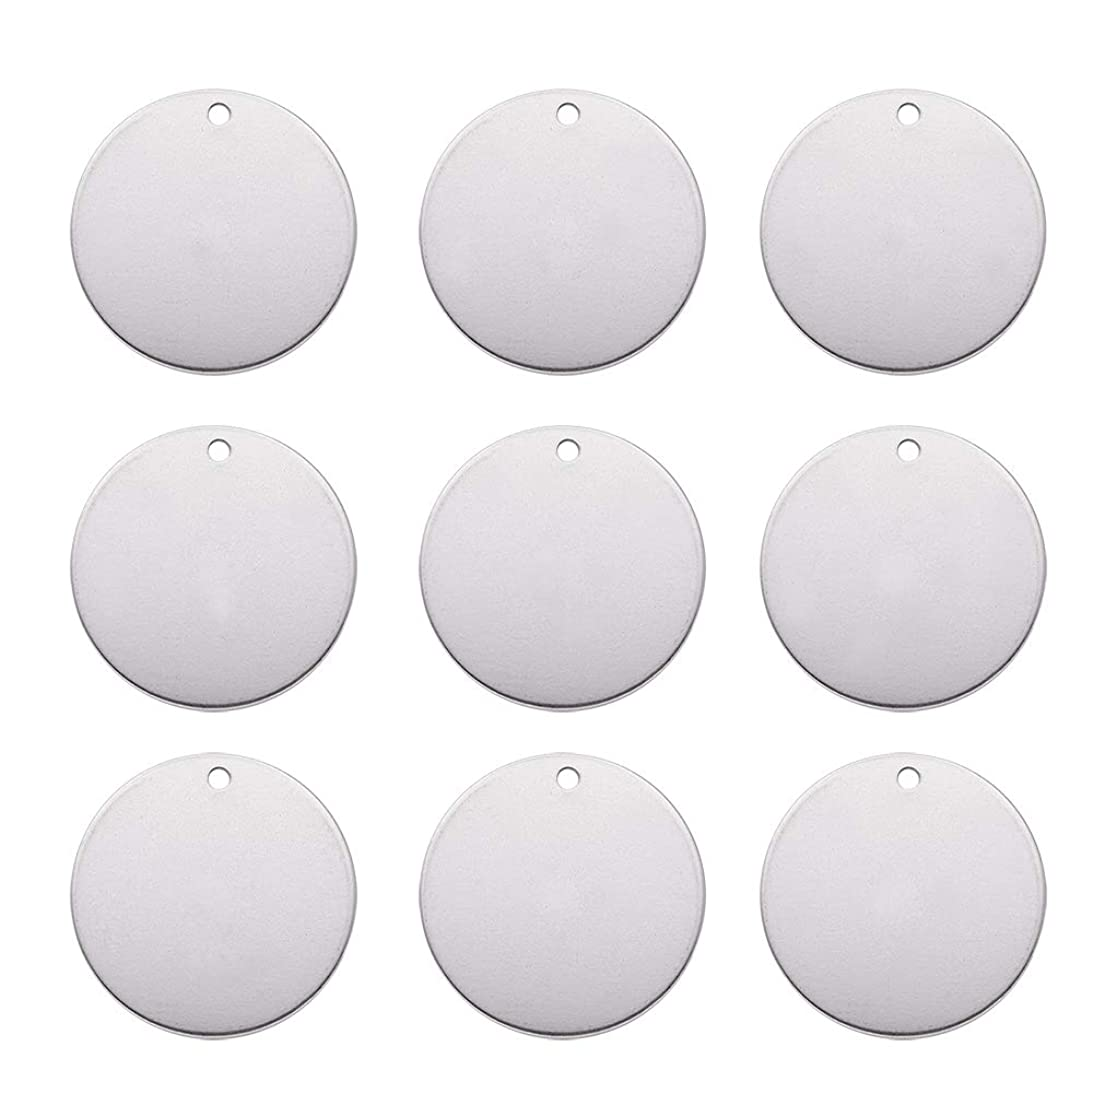 Pandahall 10pcs Stainless Steel Blank Stamping Tag Pendants Flat Round 1-1/5 Inch Unfading Tag Charms for Jewelry Making